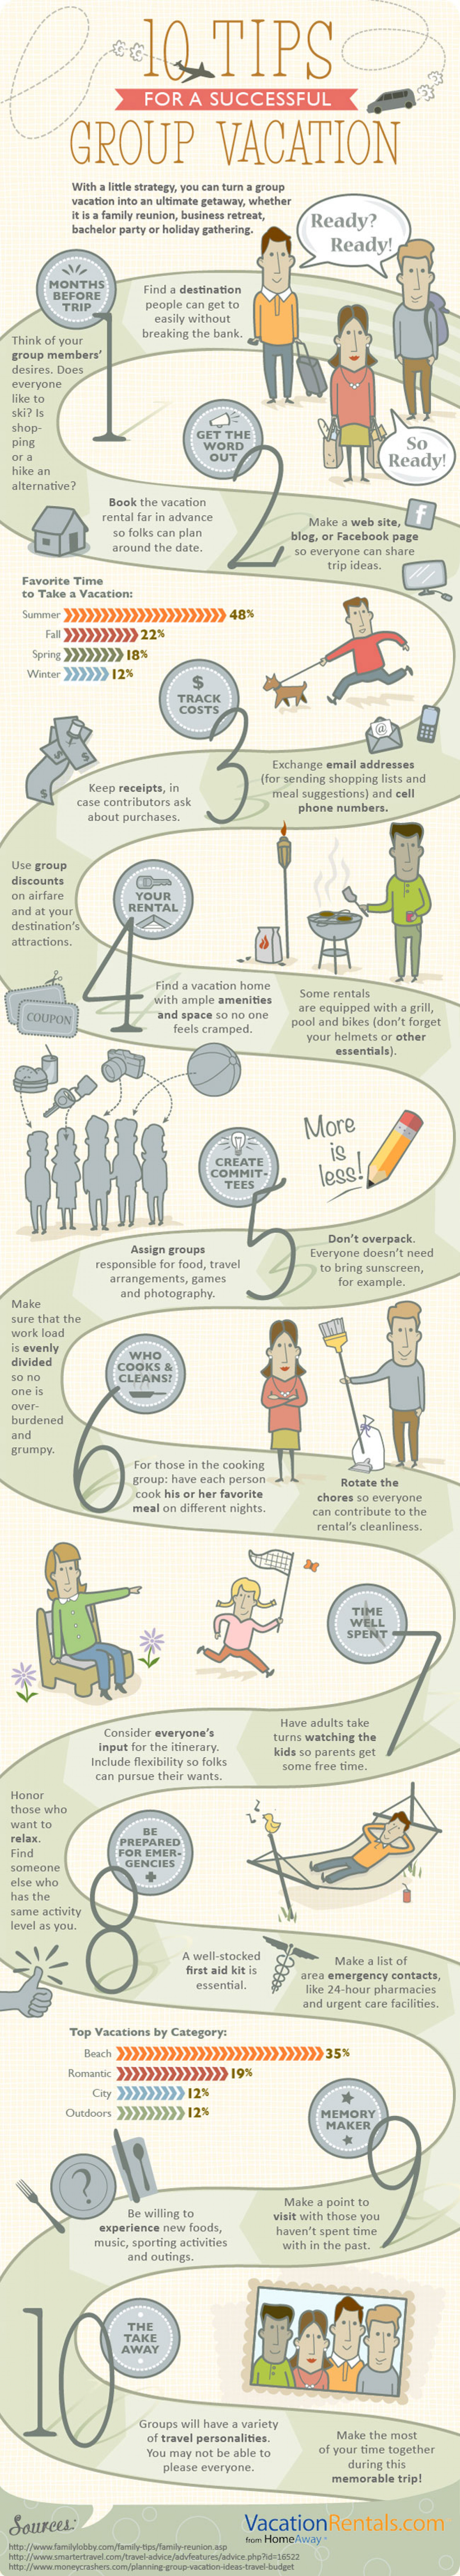 Make a Group Vacation Awesome Infographic